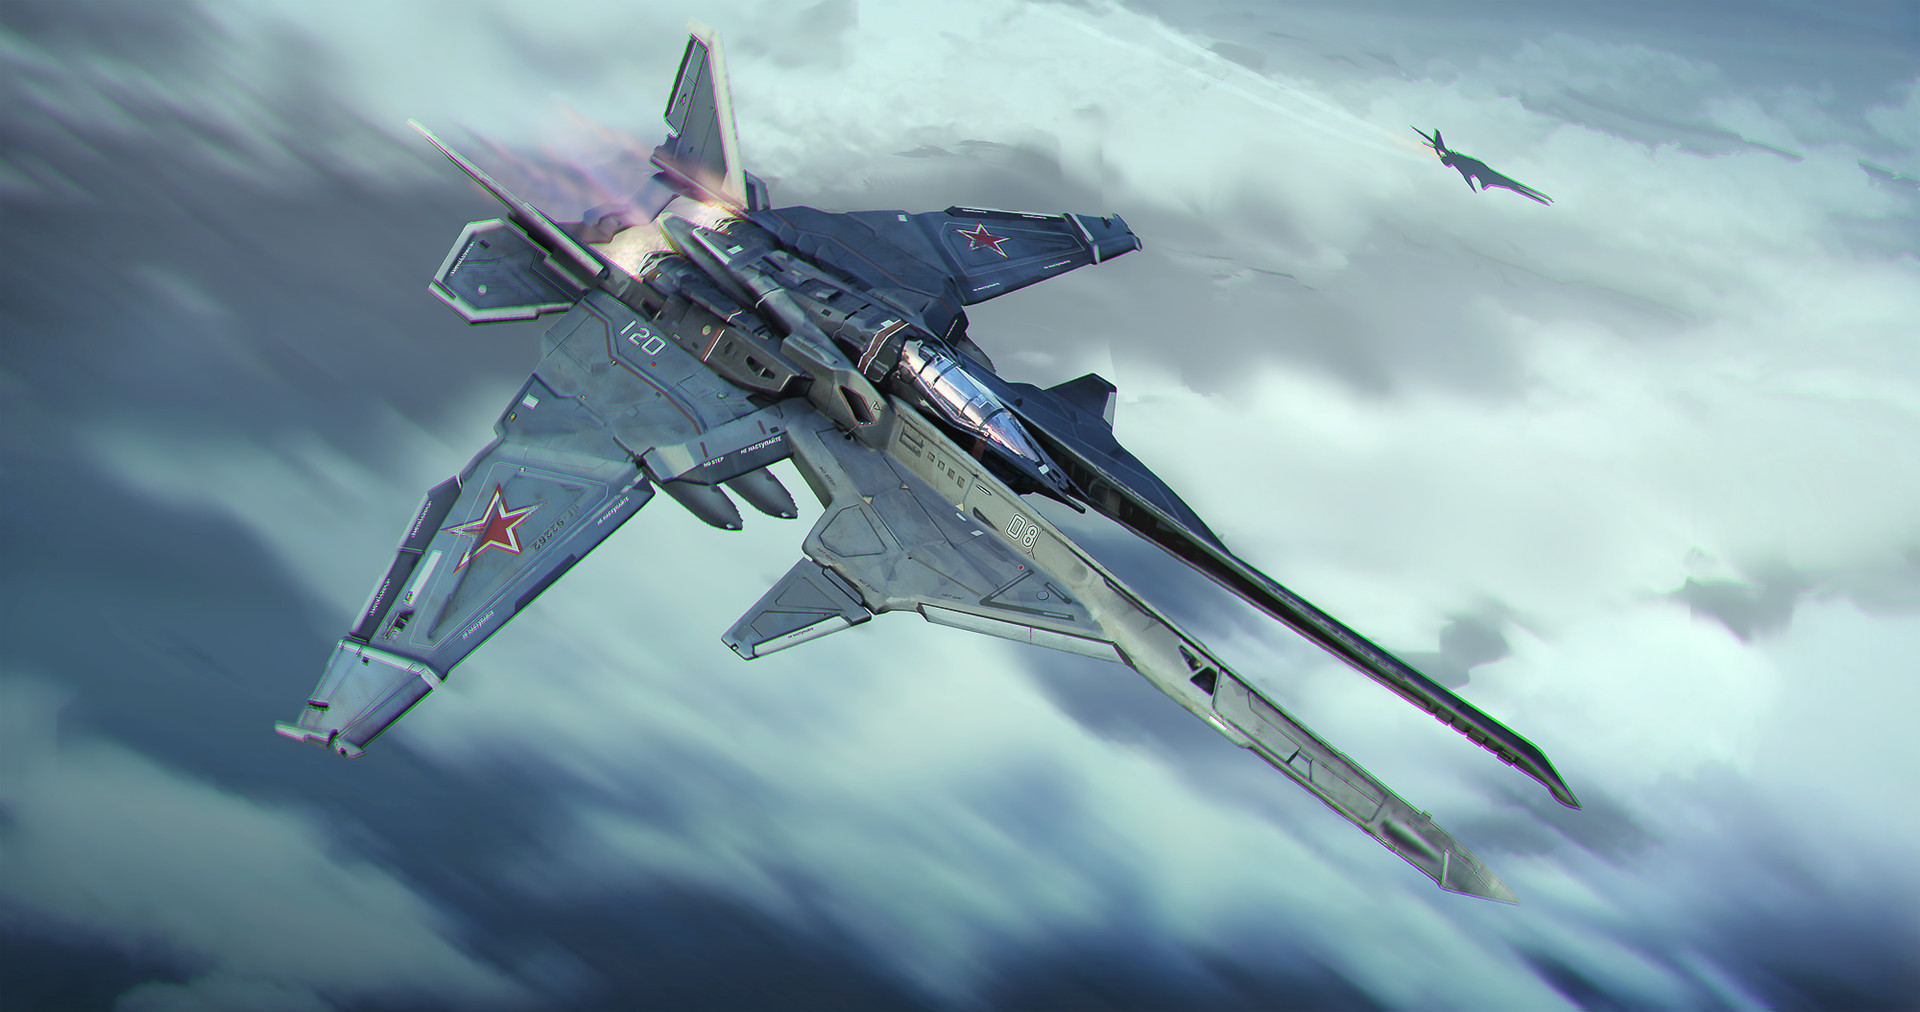 space fighter jets - HD1920×1012